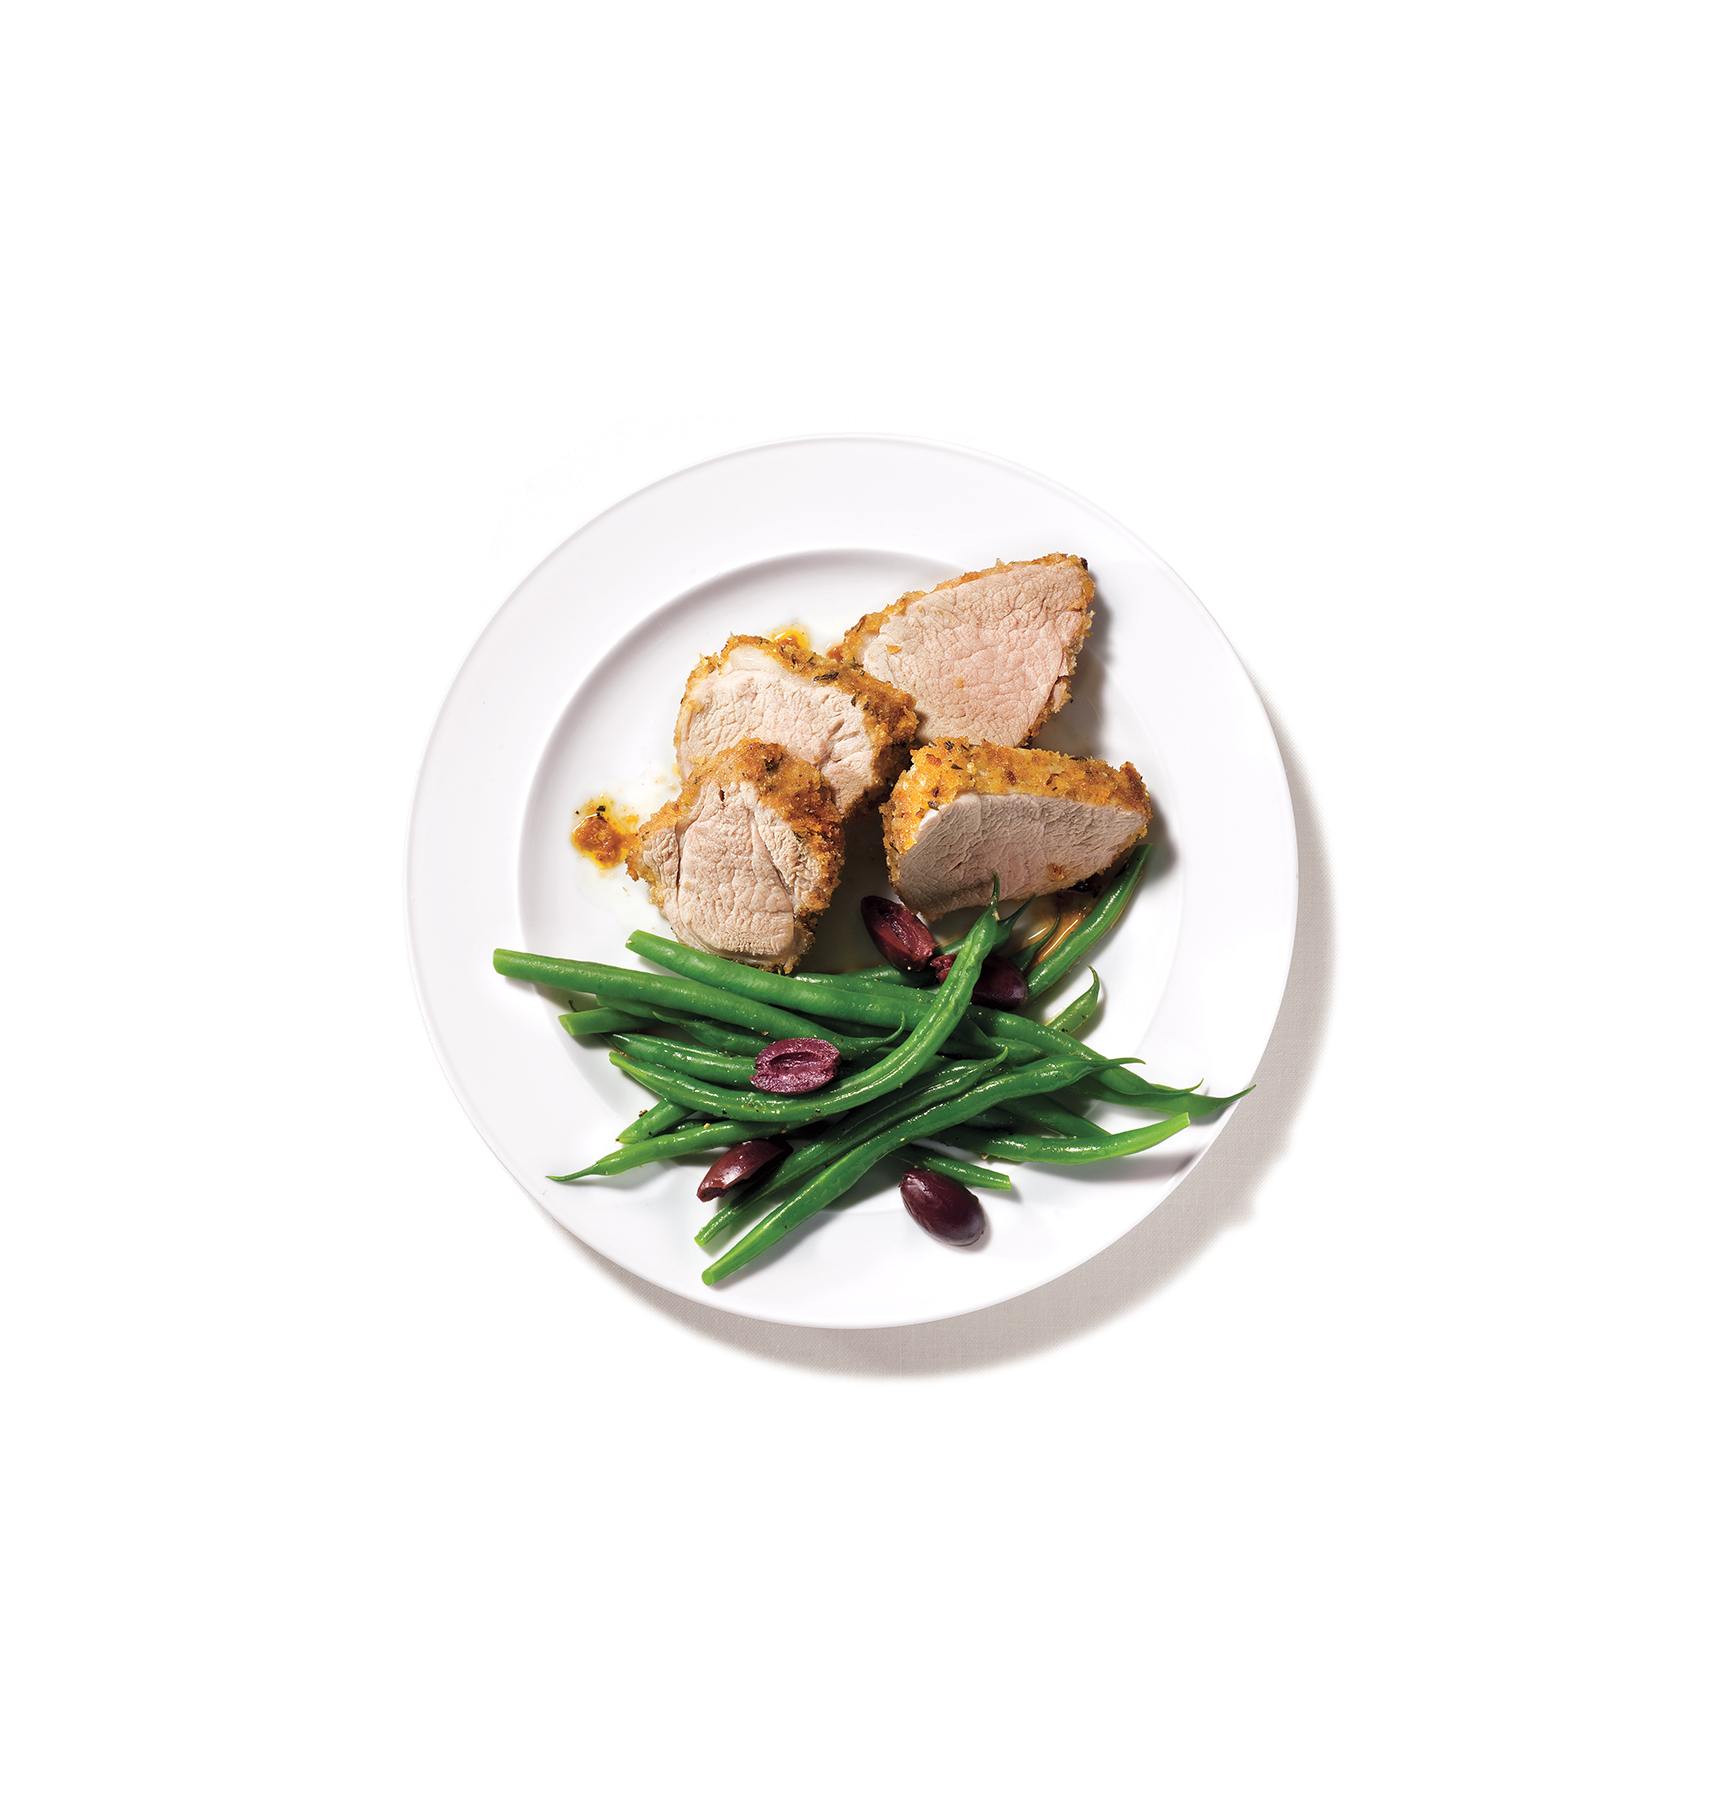 rosemary-crusted-pork